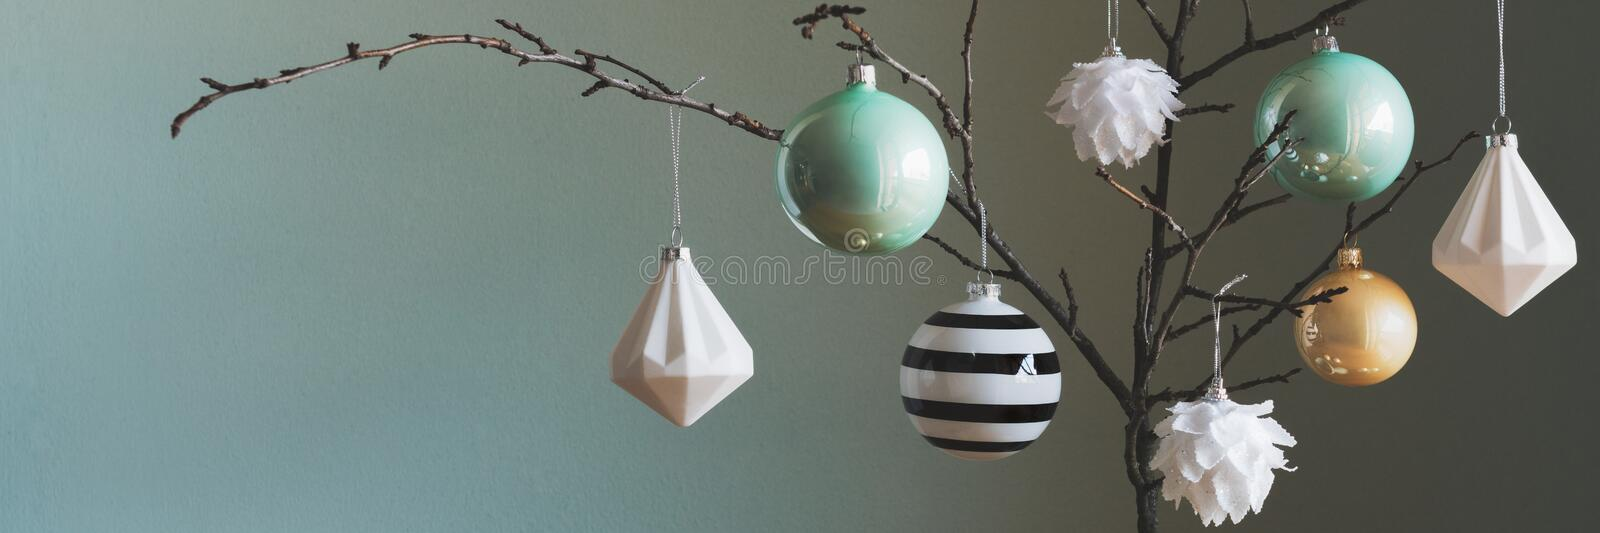 Modern and elegant simple nordic christmas tree decorations in black, white, gold and turquoise royalty free stock photography